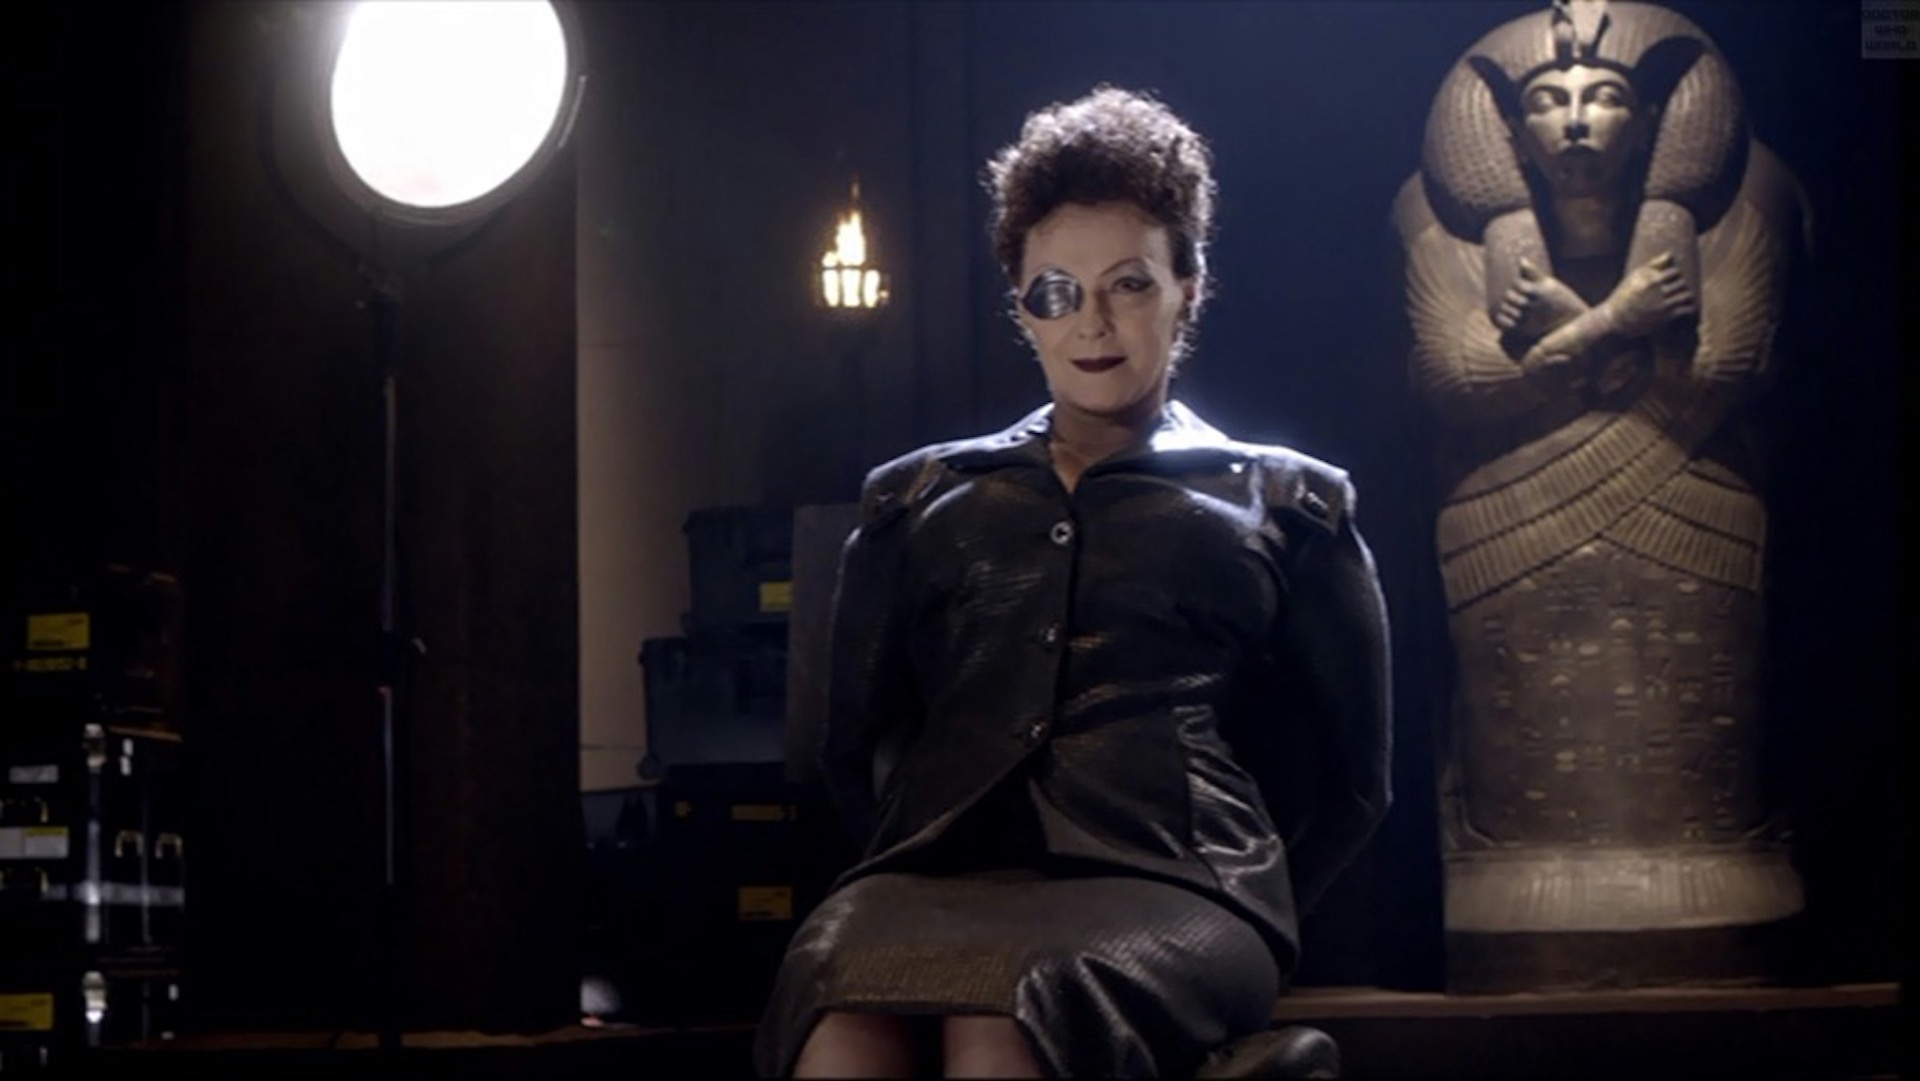 Madam Kovarian